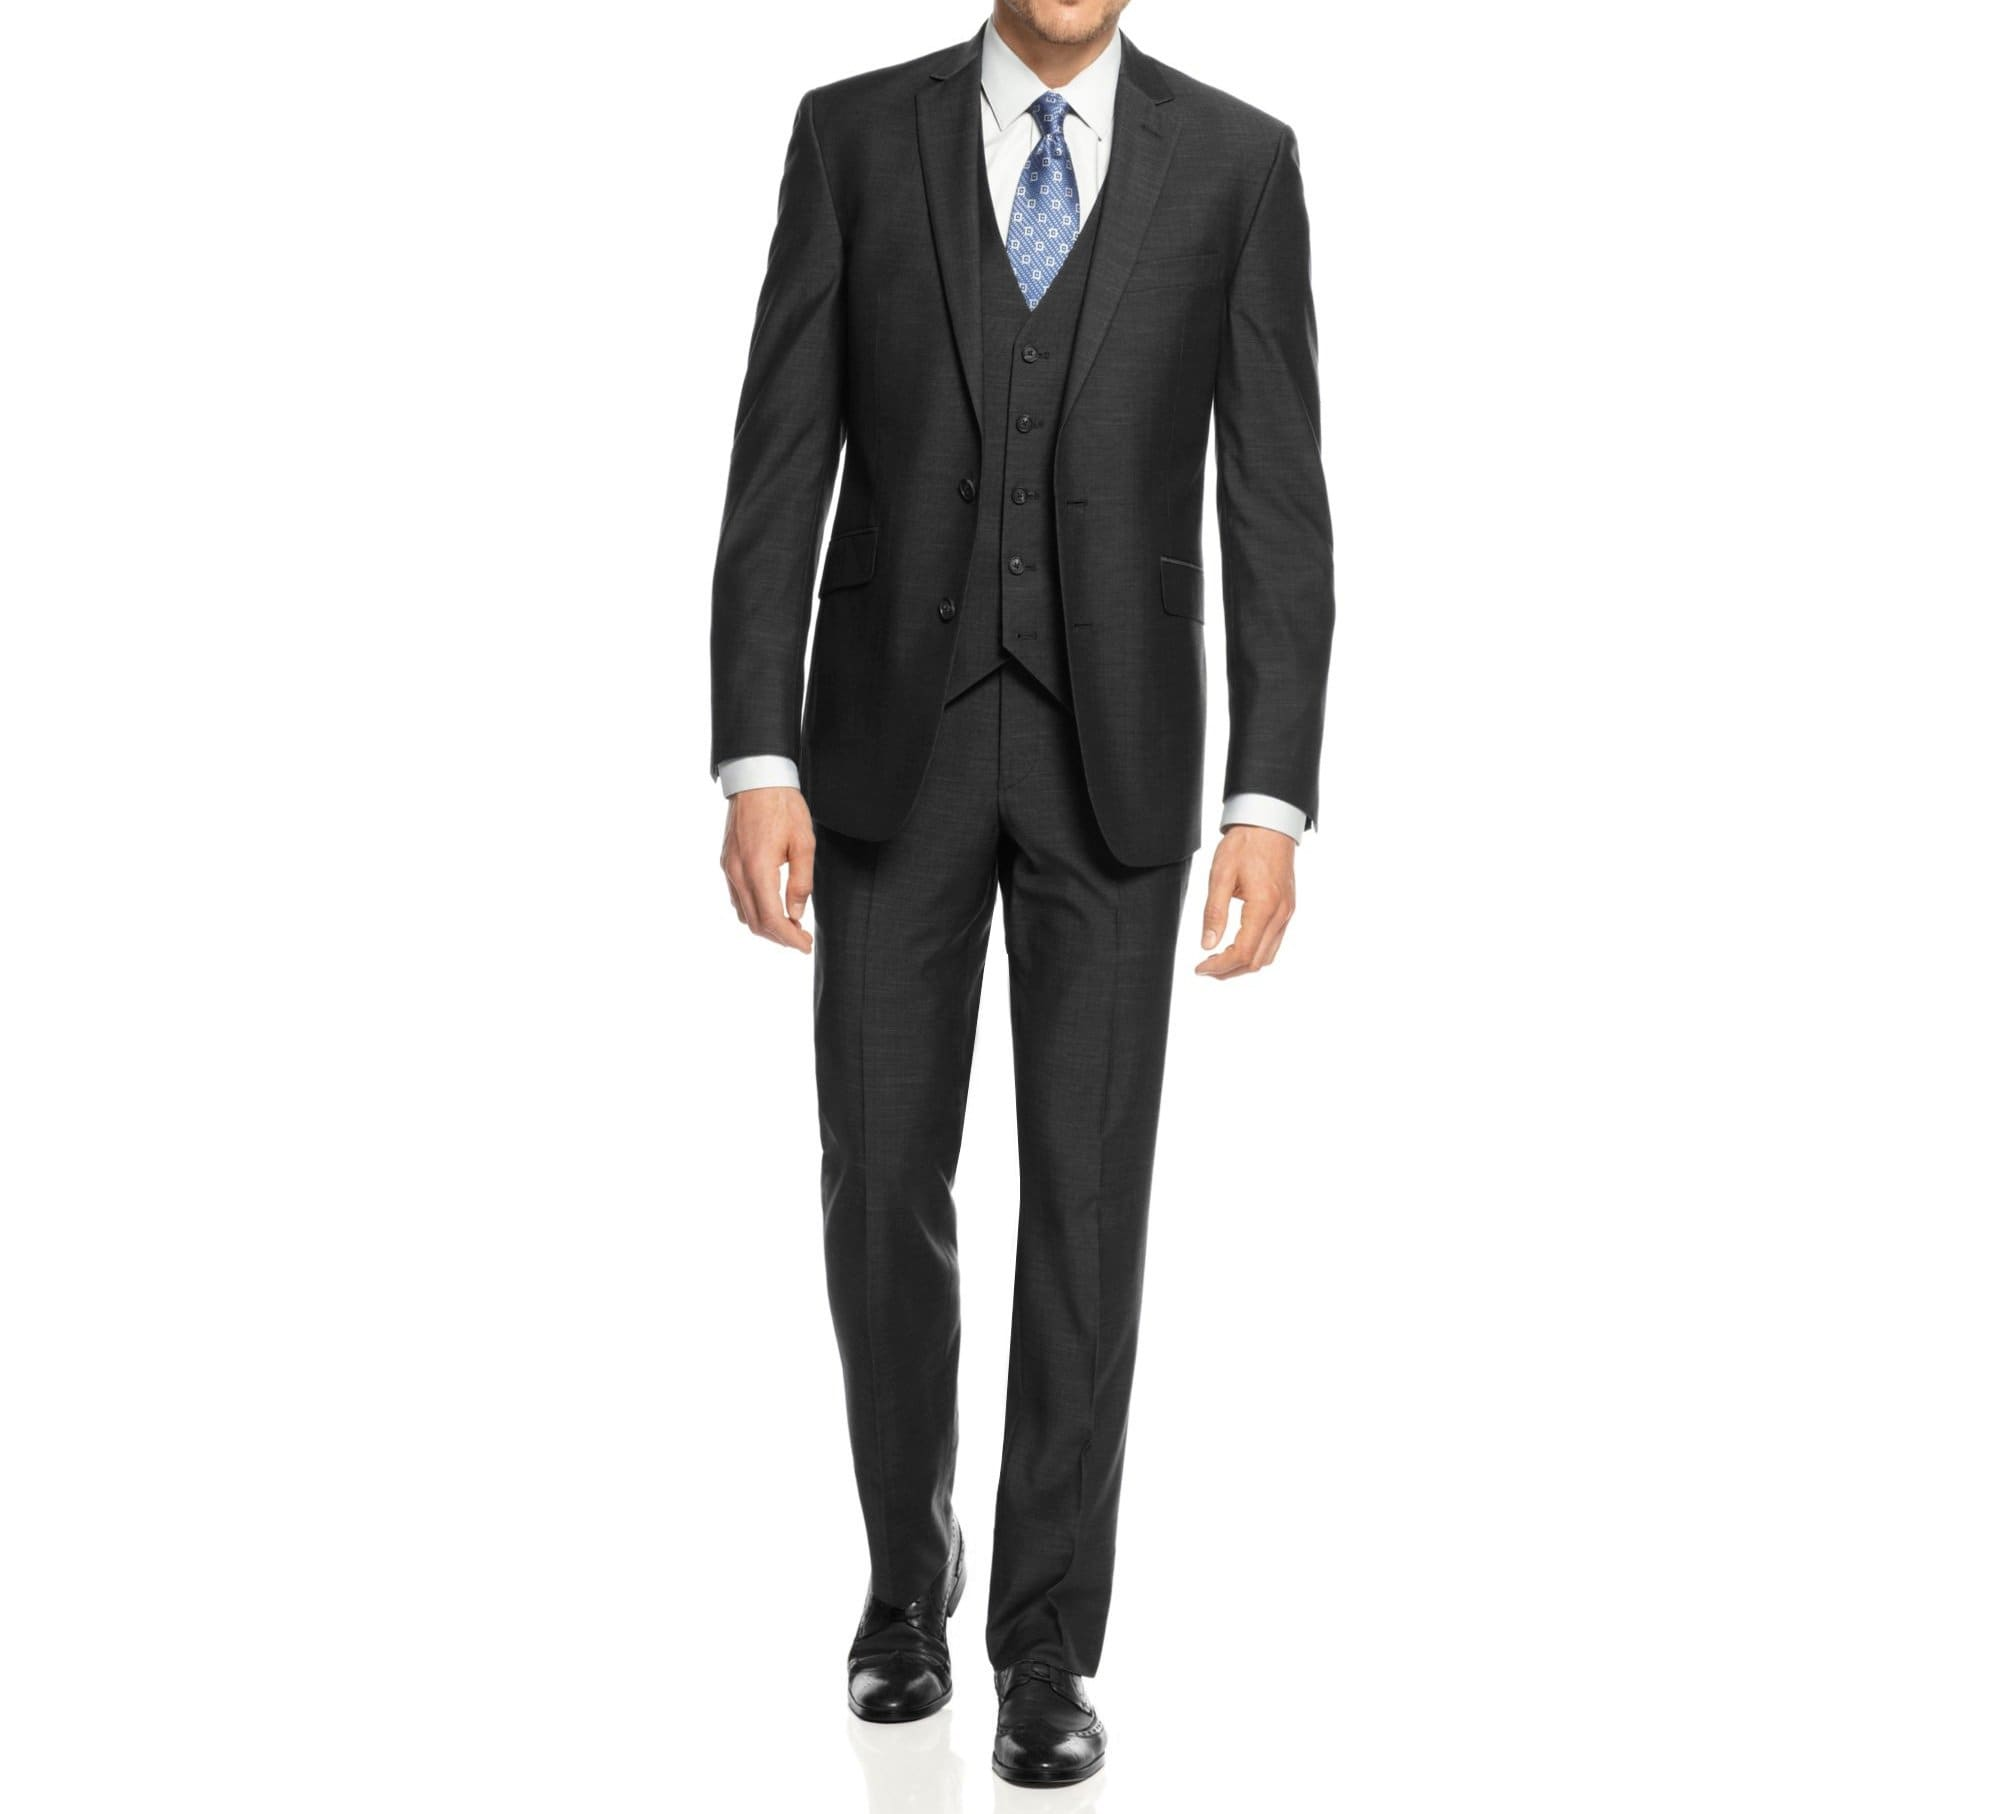 DAILY HAUTE Men's Suits CHARCOAL / 36Rx30W Braveman Men's 3-Piece Three Piece Slim Fit Formal Cut Suit Set